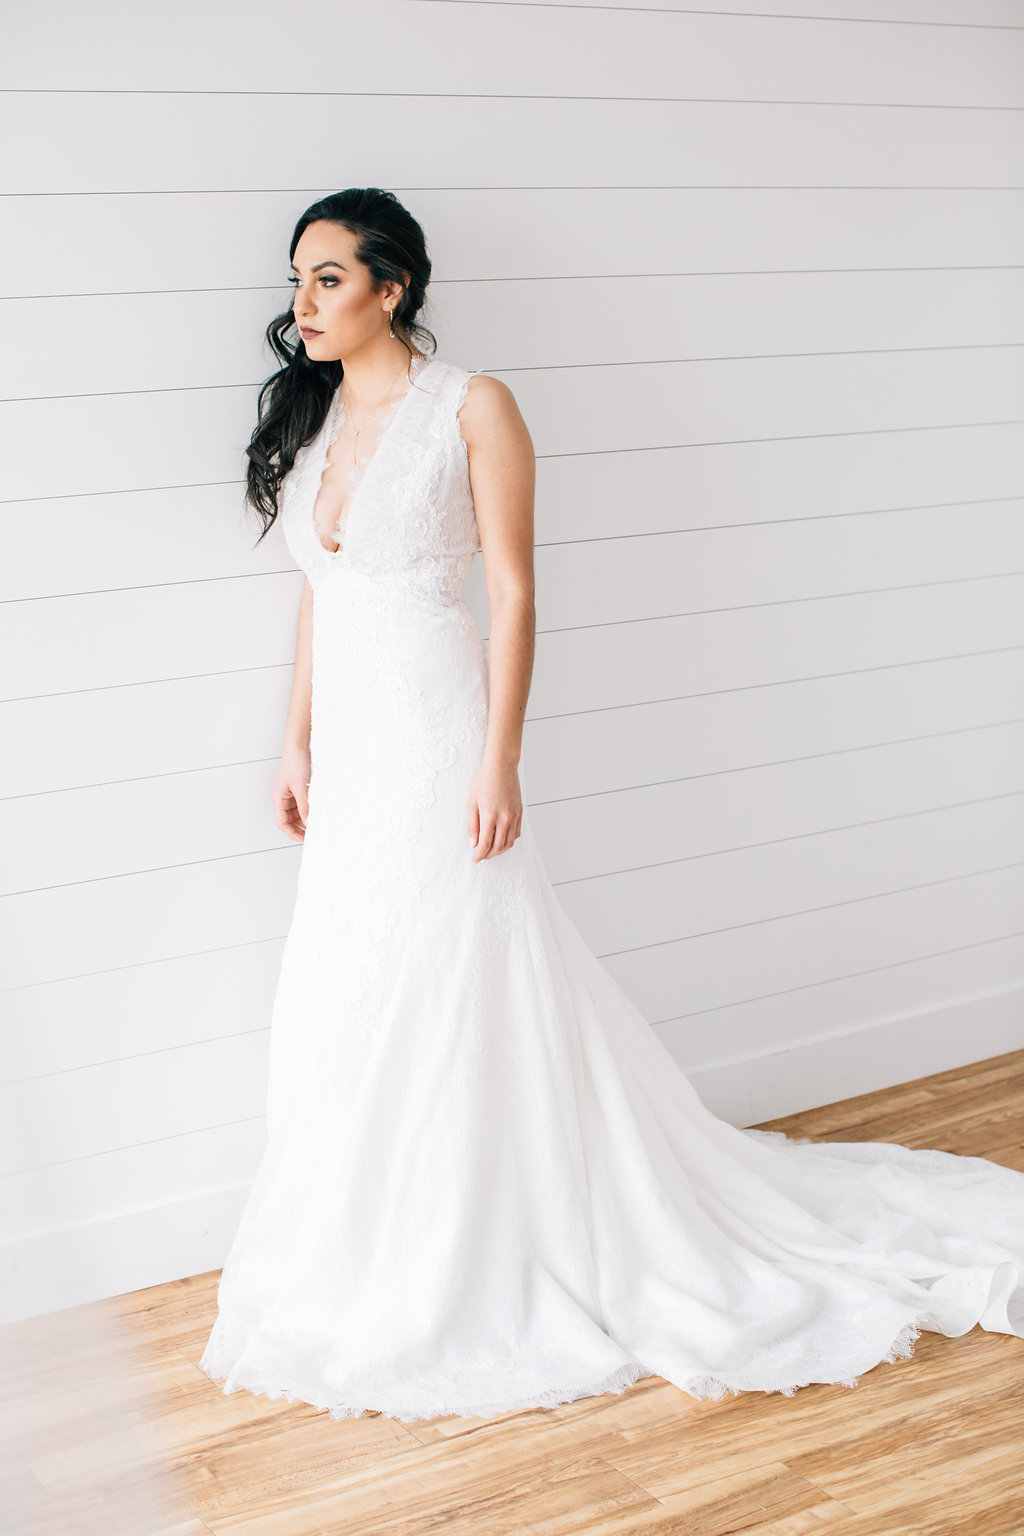 08bda633e798 This dress comes in ivory (as pictured), as well as a beautiful deep nude  color that really makes the overlying lace pop! Both colors are stunning in  their ...